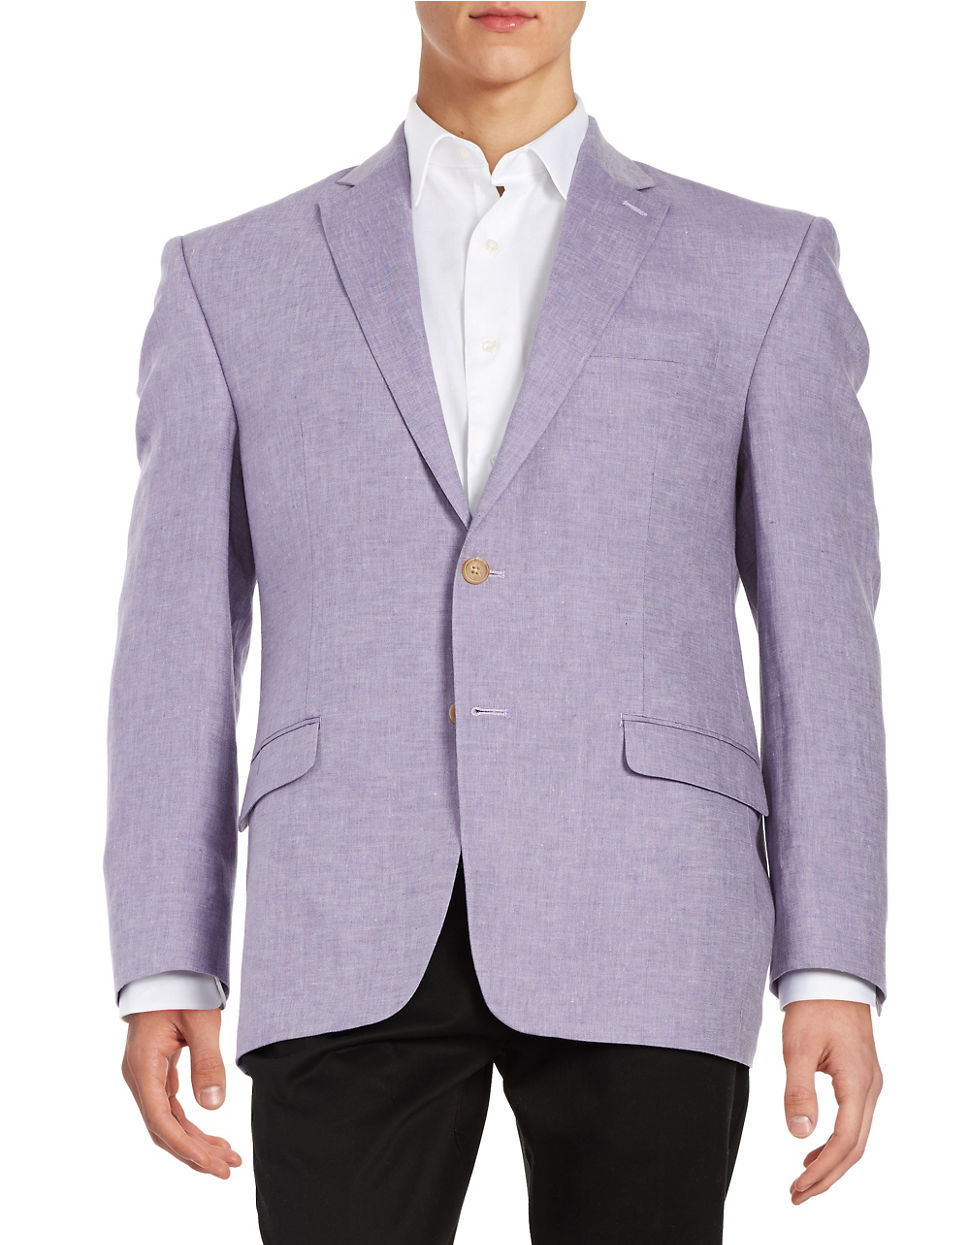 lauren by ralph lauren purple two button linen blazer for men lyst. Black Bedroom Furniture Sets. Home Design Ideas